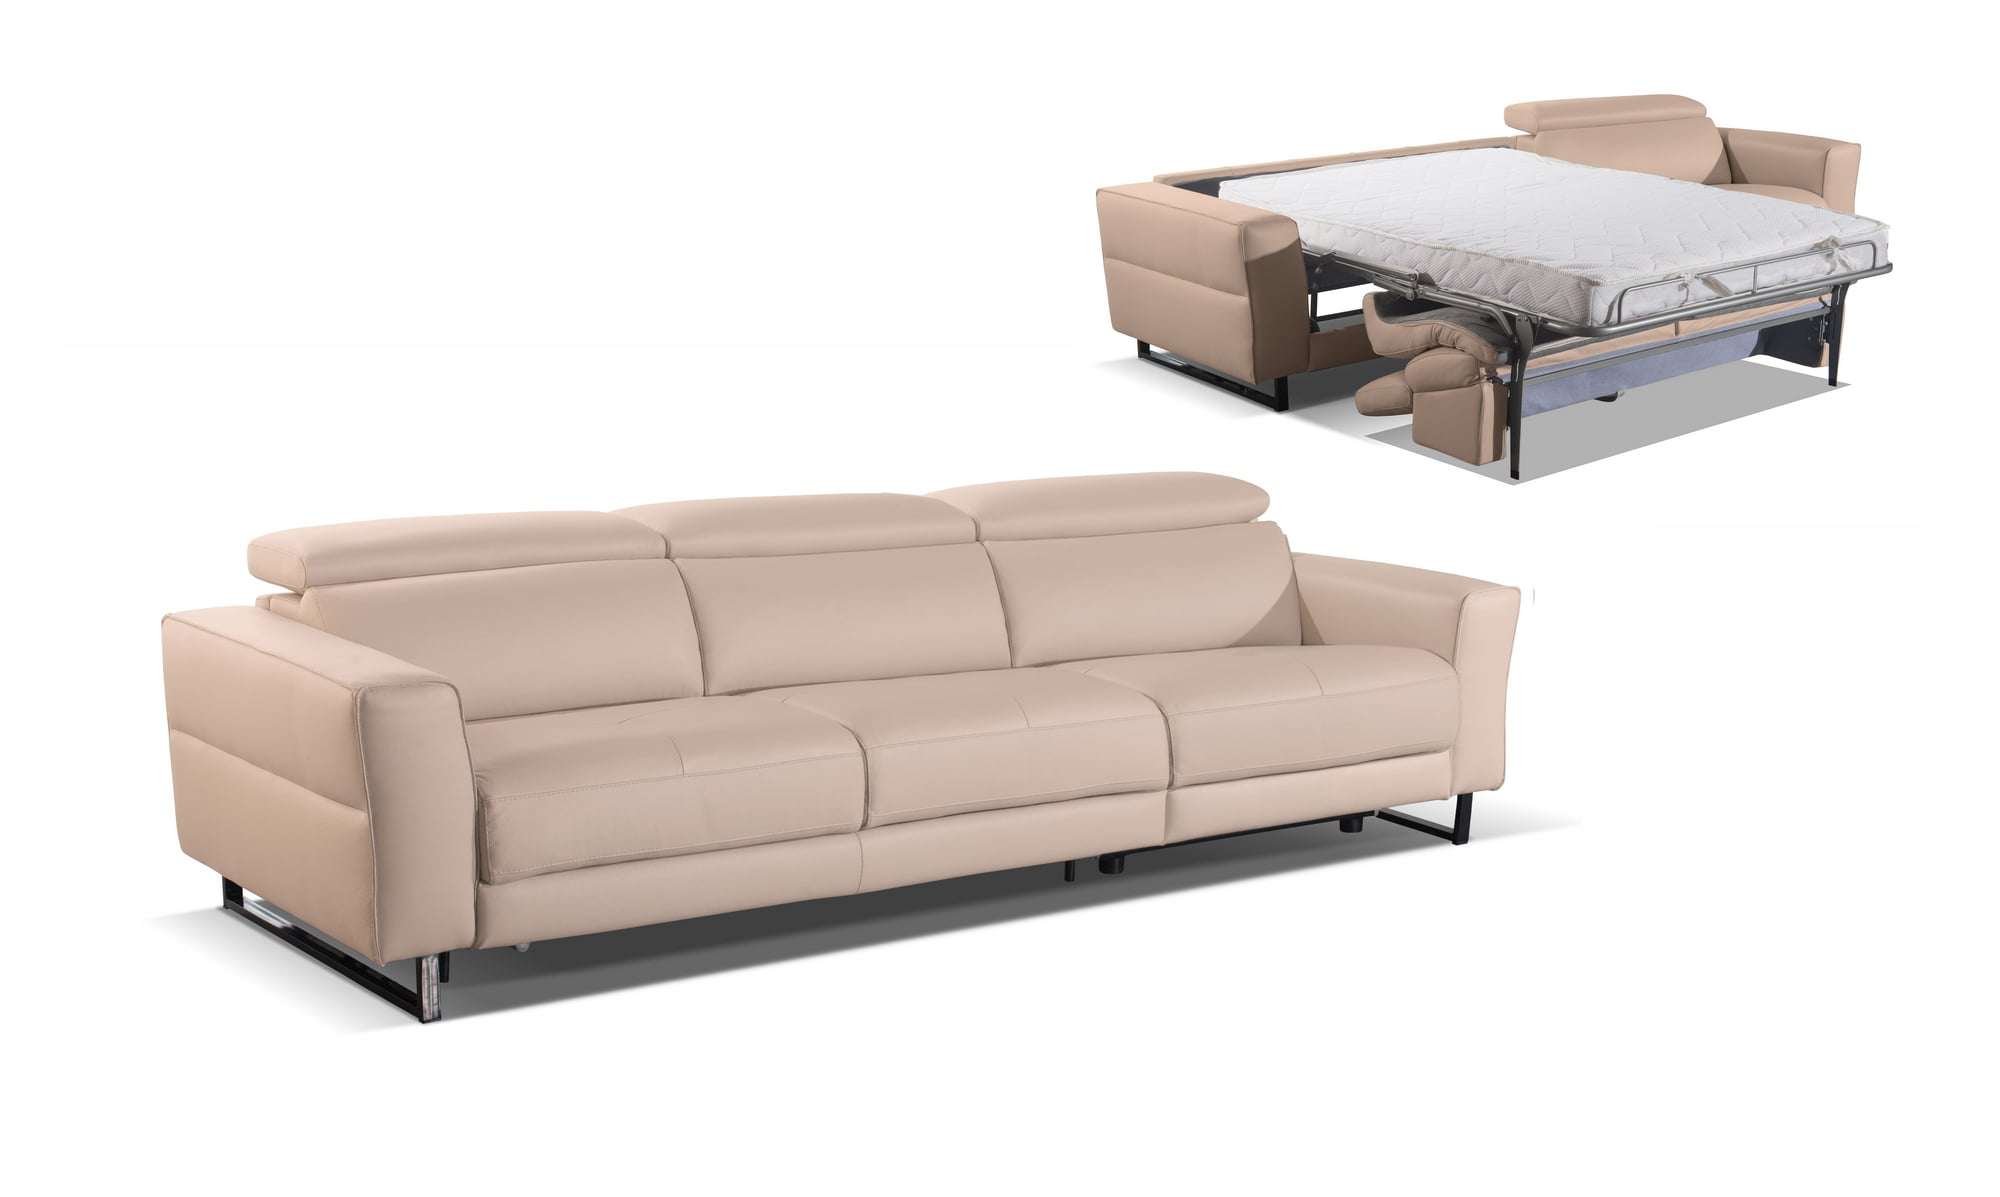 VIG Furniture Accenti Italia Snooker Modern Leather Grey White Sofa Bed with Recliner